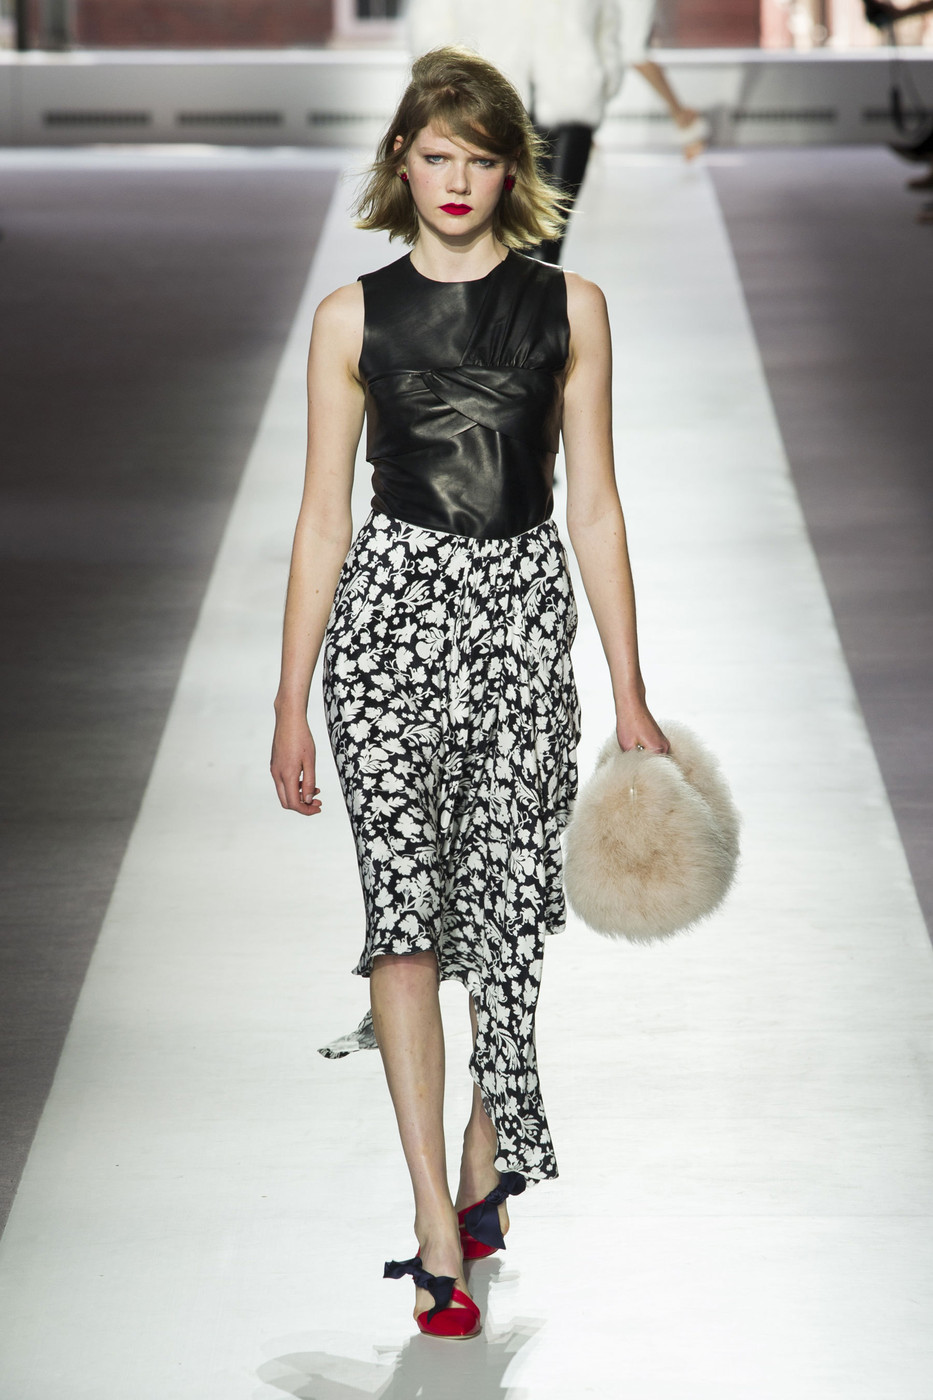 Topshop Unique Spring 2016 Runway Pictures